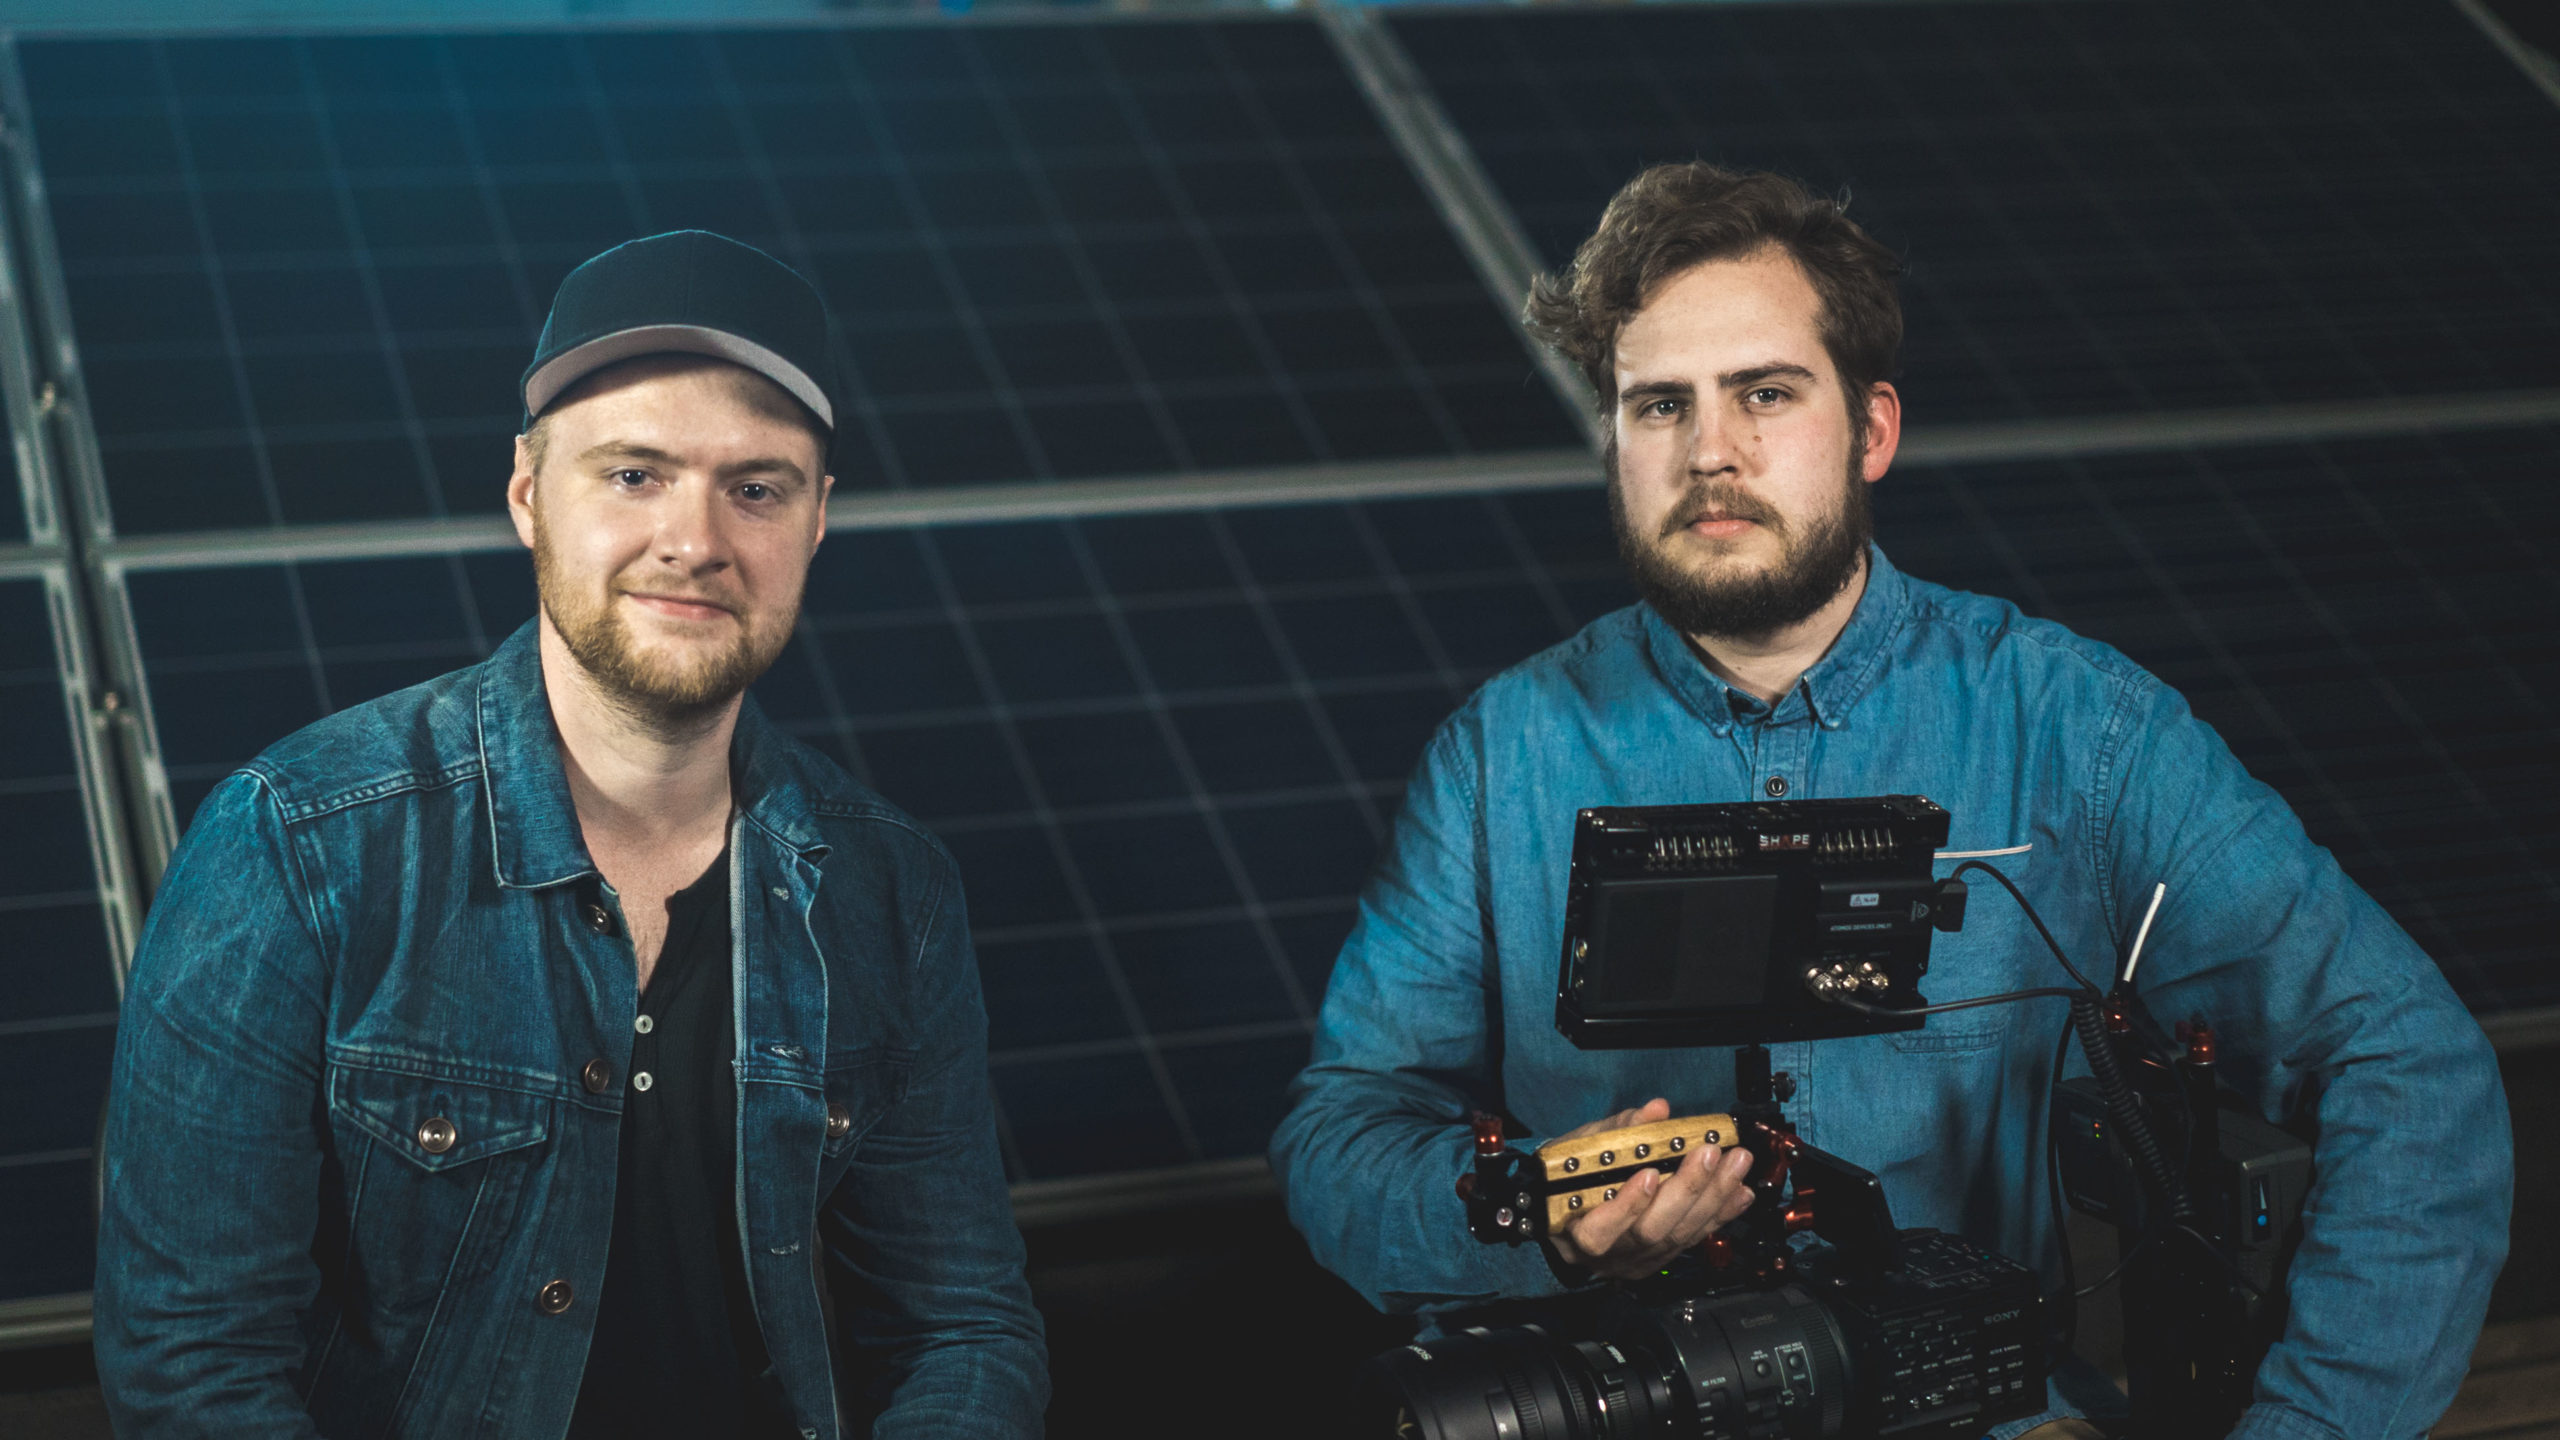 Jordan Bloemen + Colin Waugh filming the web series Renewable